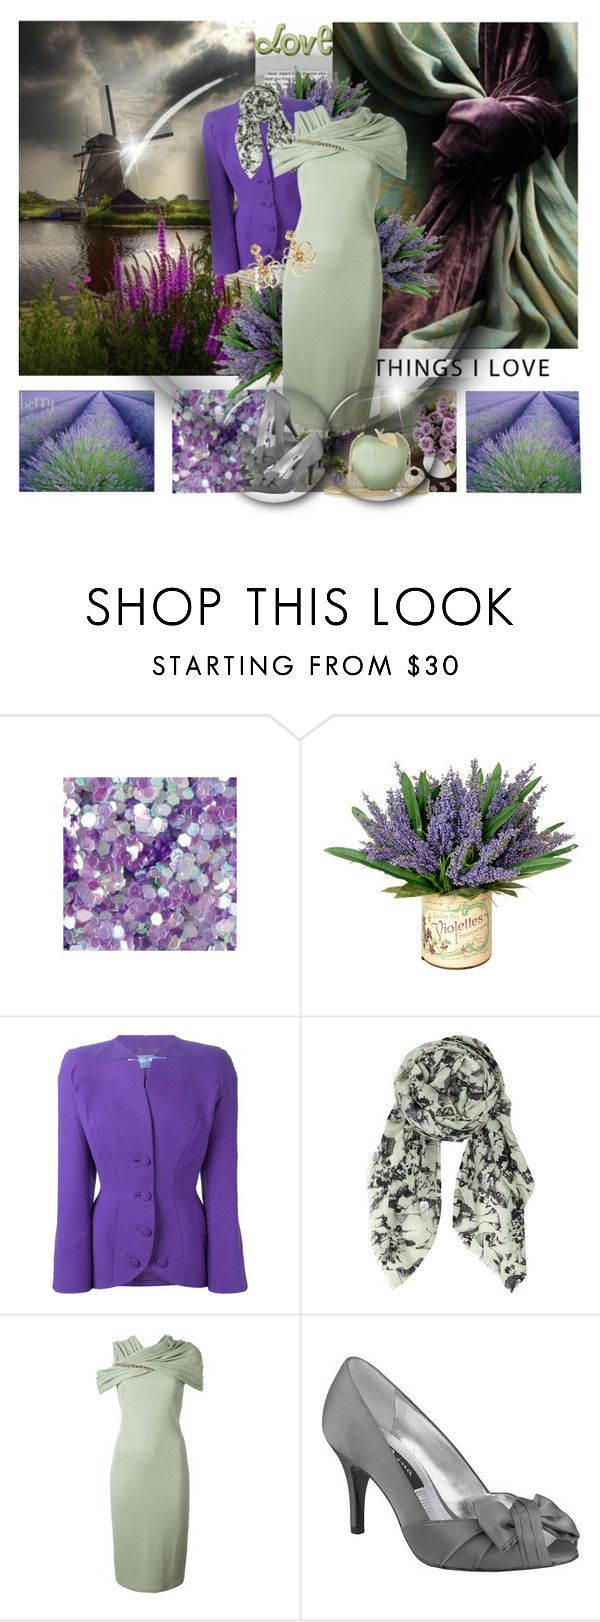 """Green, Purple and Gray Tones"" by berry1975 ❤ liked on Polyvore featuring de Le Cuona, Thierry Mugler, BeckSöndergaard, Givenchy, Anya Hindmarch and Oscar de la Renta"